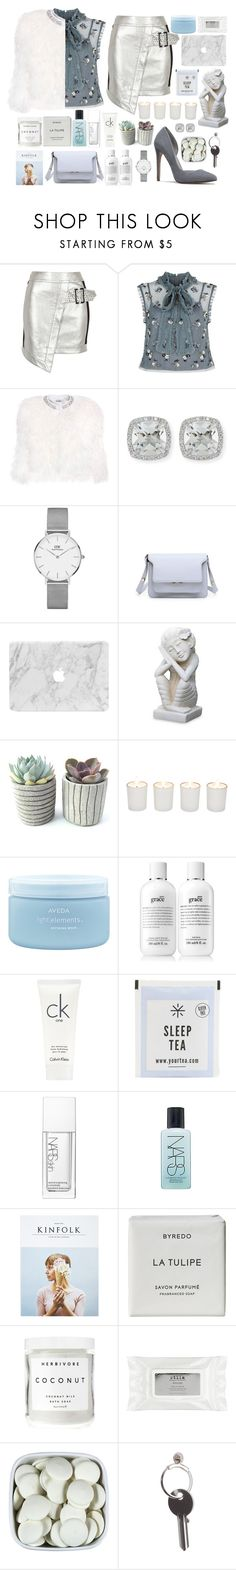 """""""NYFW"""" by themarshmallowmadness ❤ liked on Polyvore featuring River Island, Needle & Thread, Miu Miu, Frederic Sage, Daniel Wellington, NOVICA, Witchery, Aveda, philosophy and Calvin Klein"""